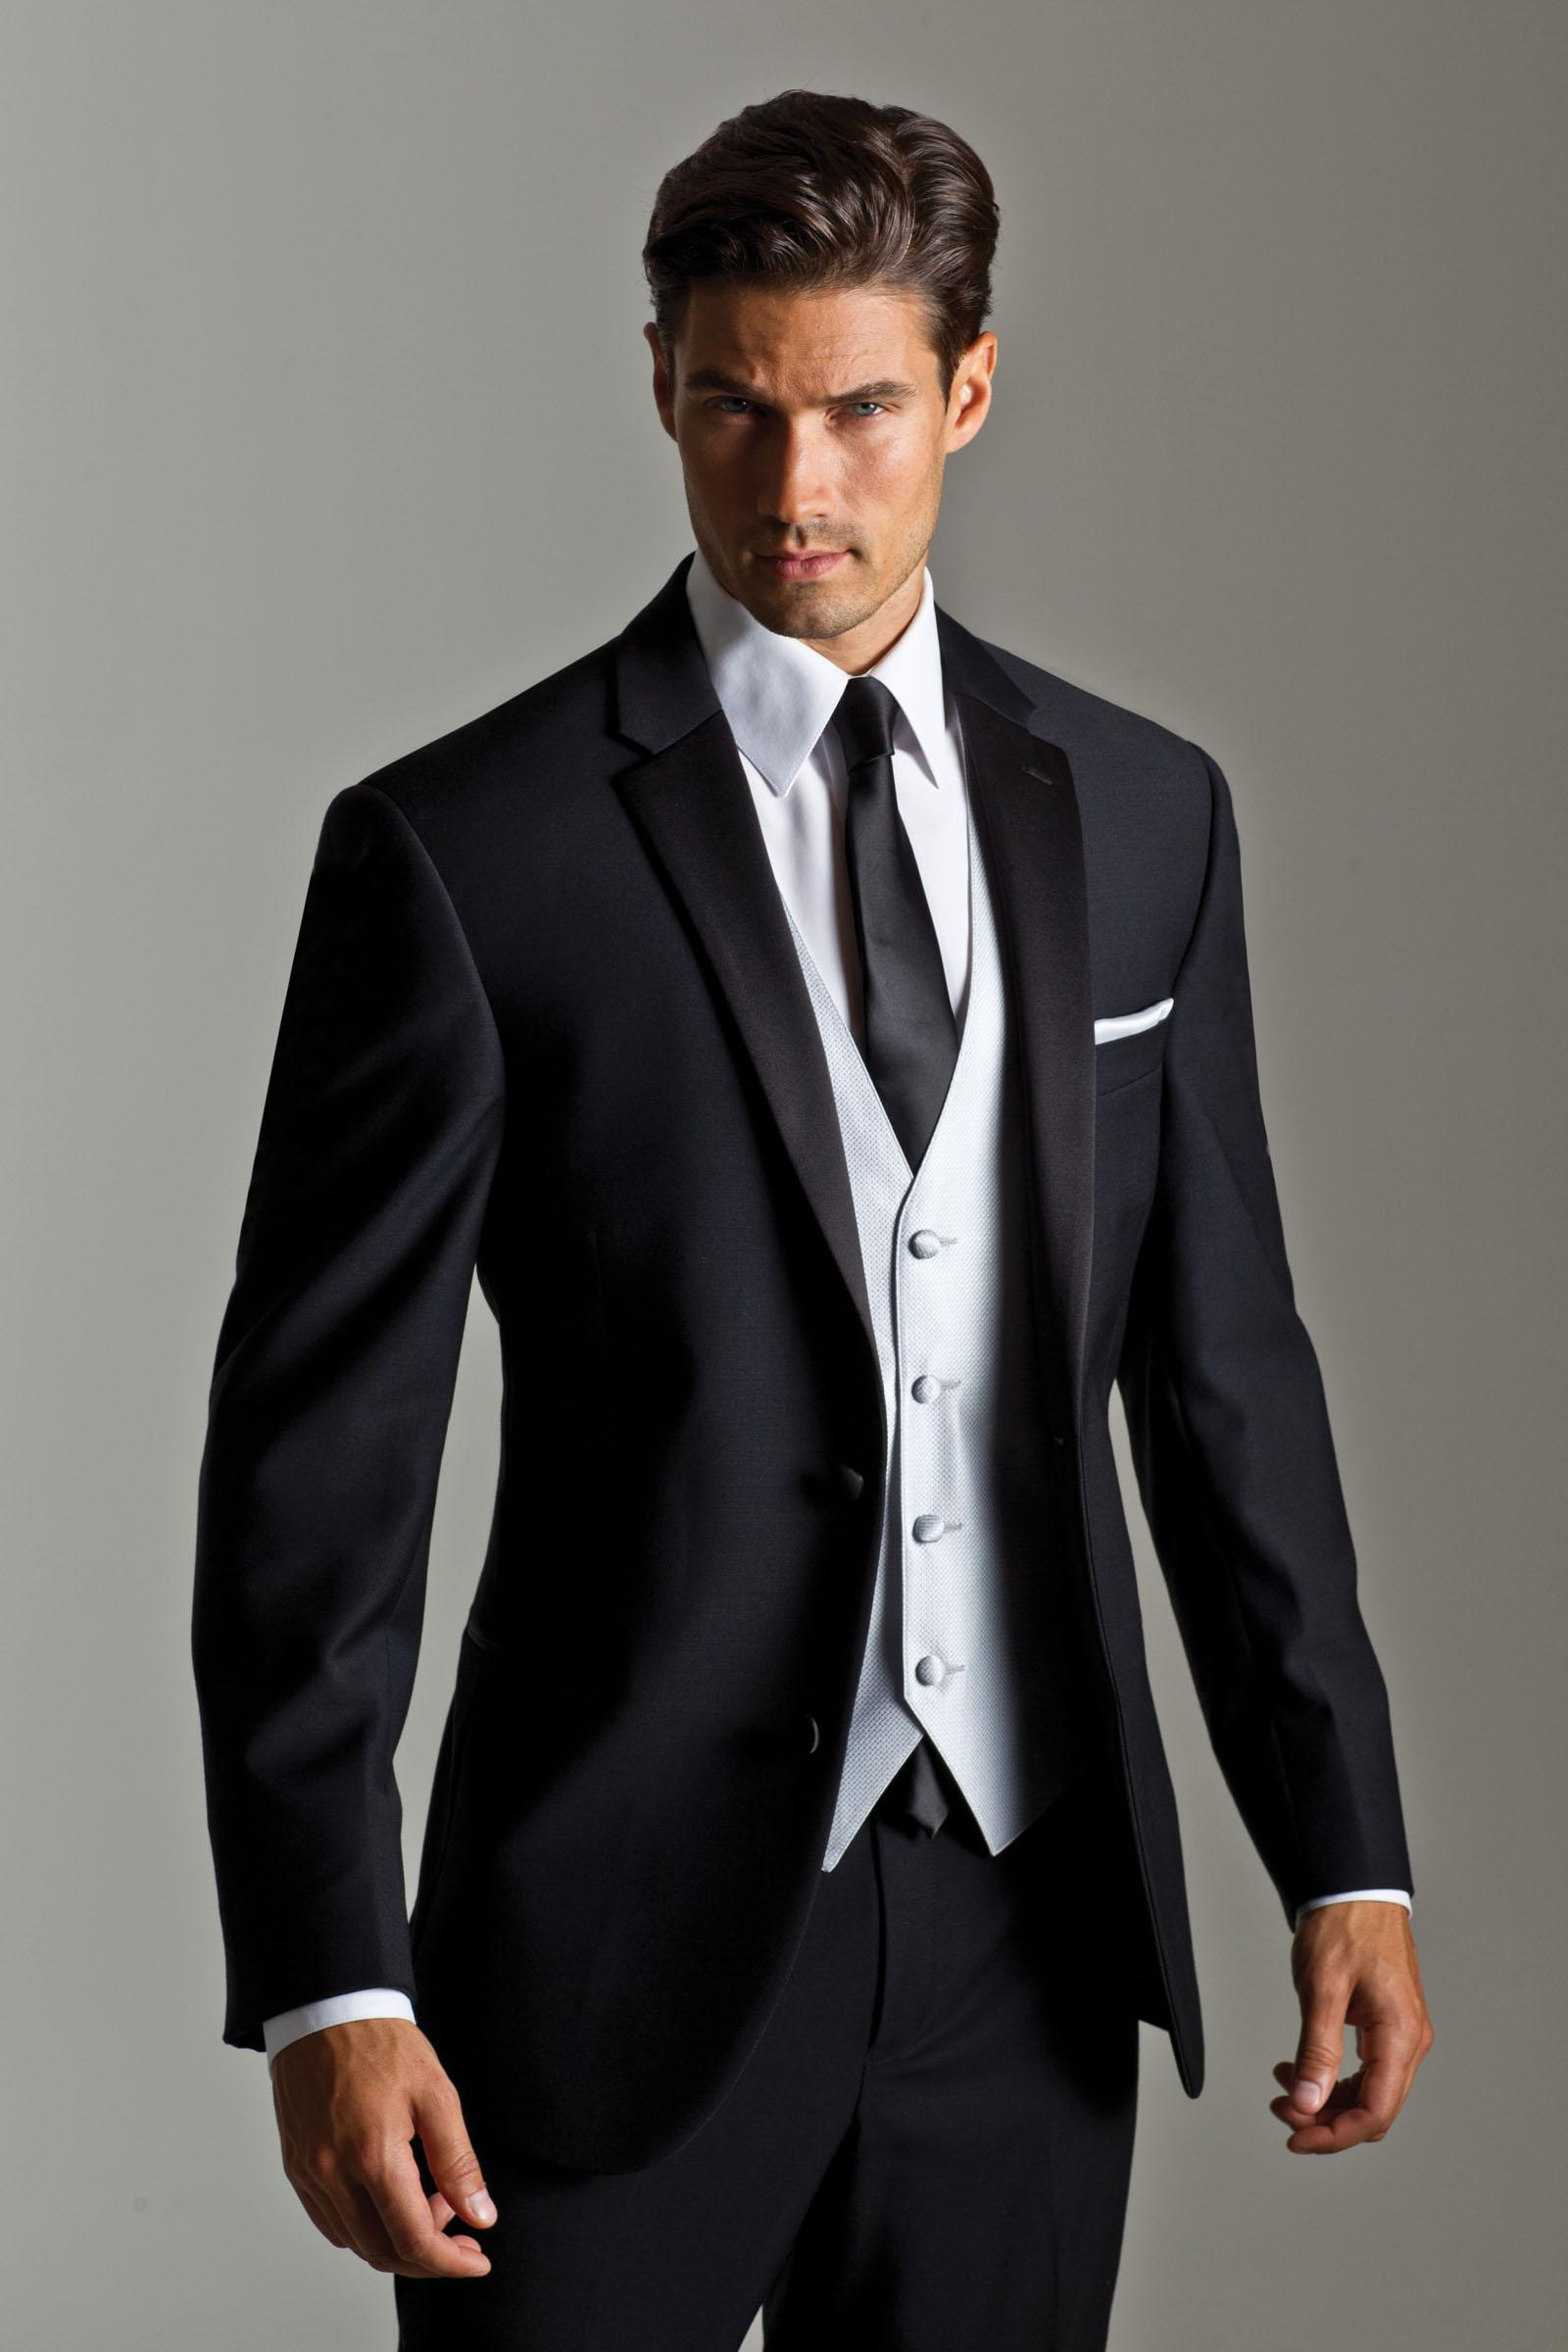 Suit for Men Styles – Some of The Best